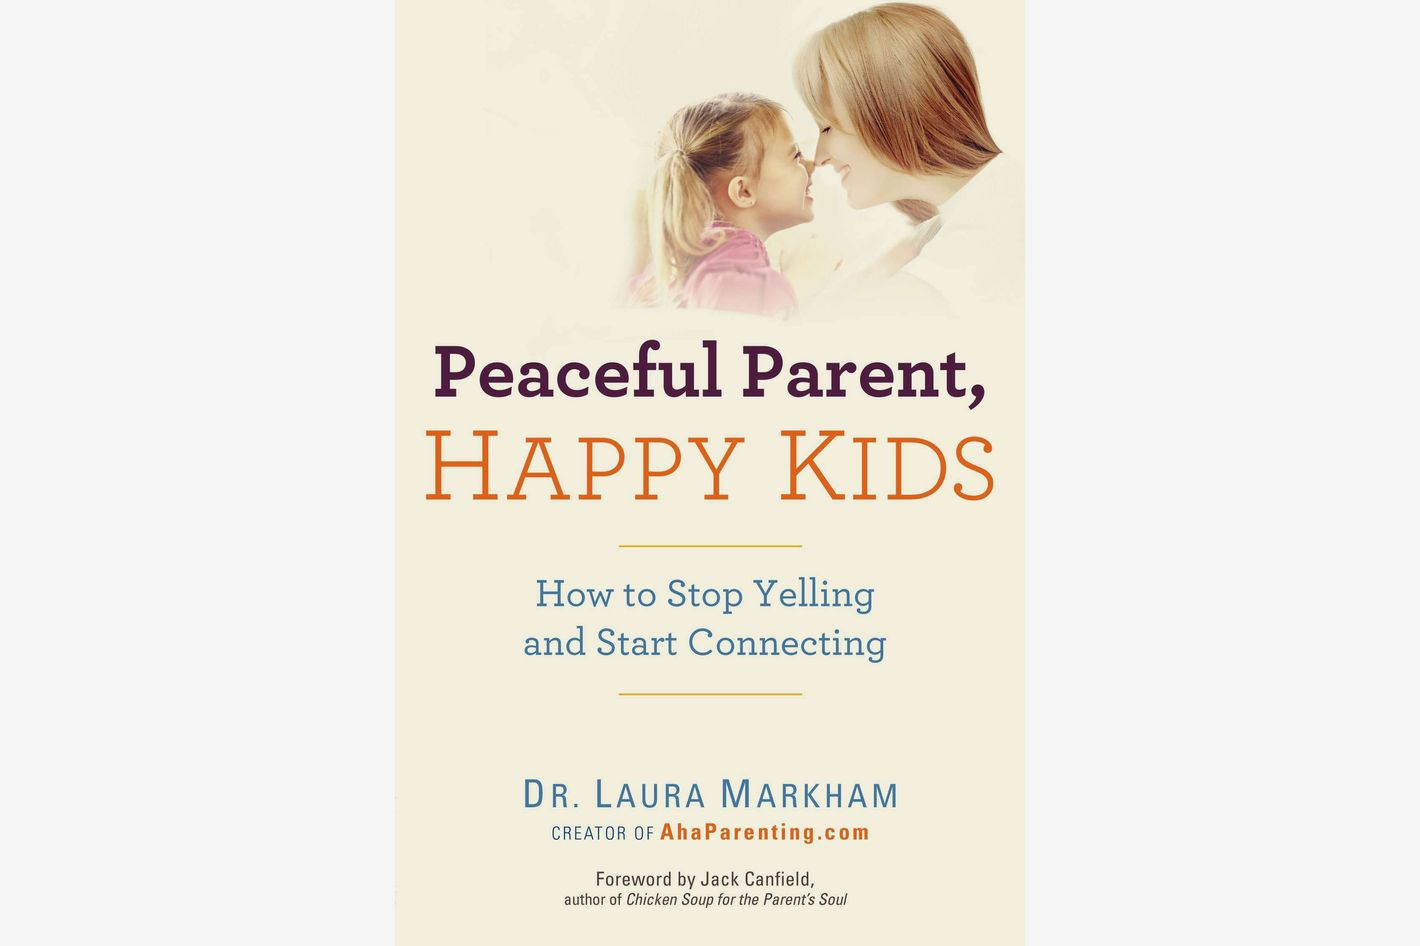 <em>Peaceful Parent, Happy Kids: How to Stop Yelling and Start Connecting</em>, by Dr. Laura Markham